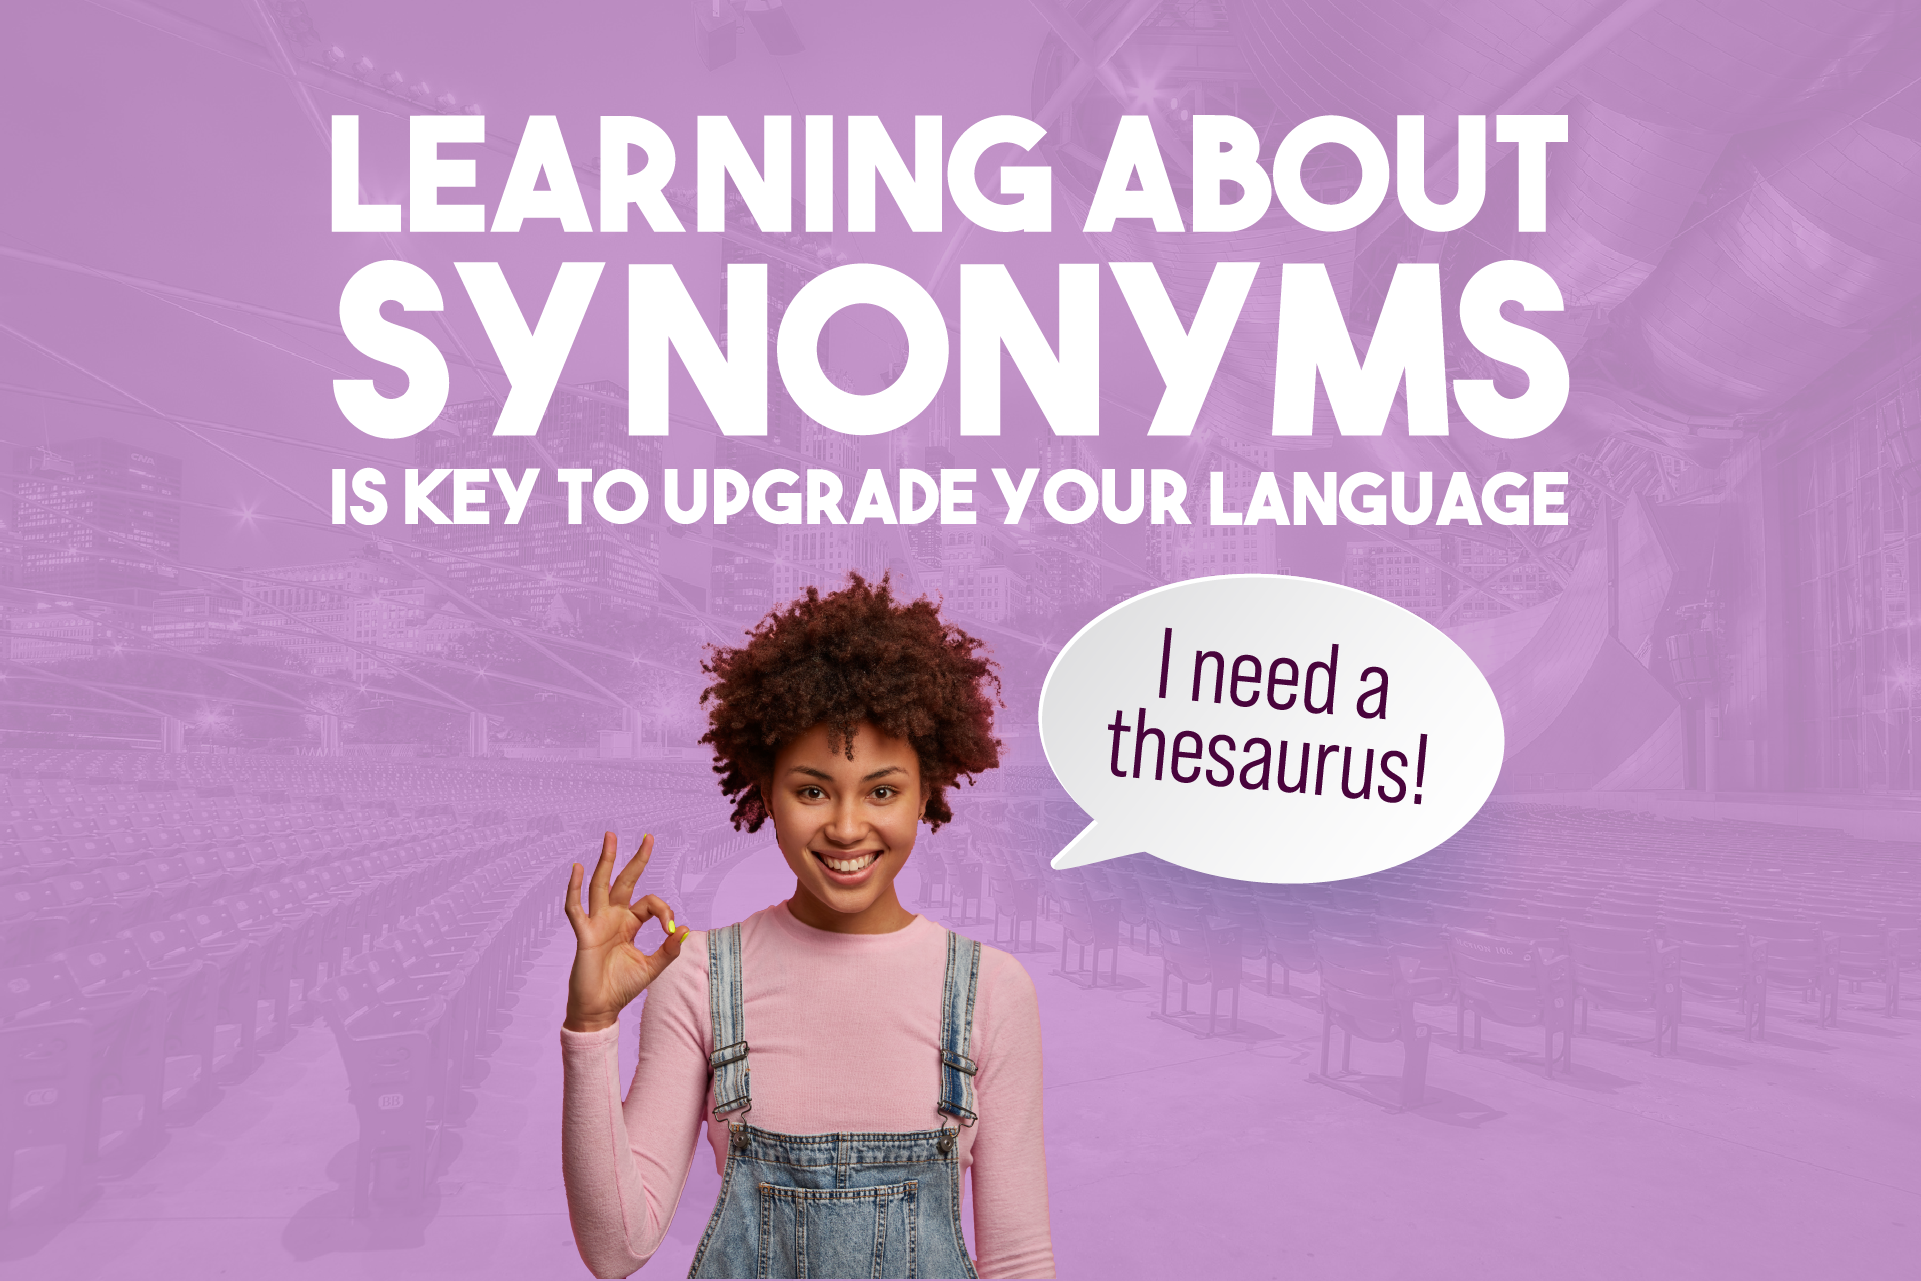 Here is why you need a thesaurus!